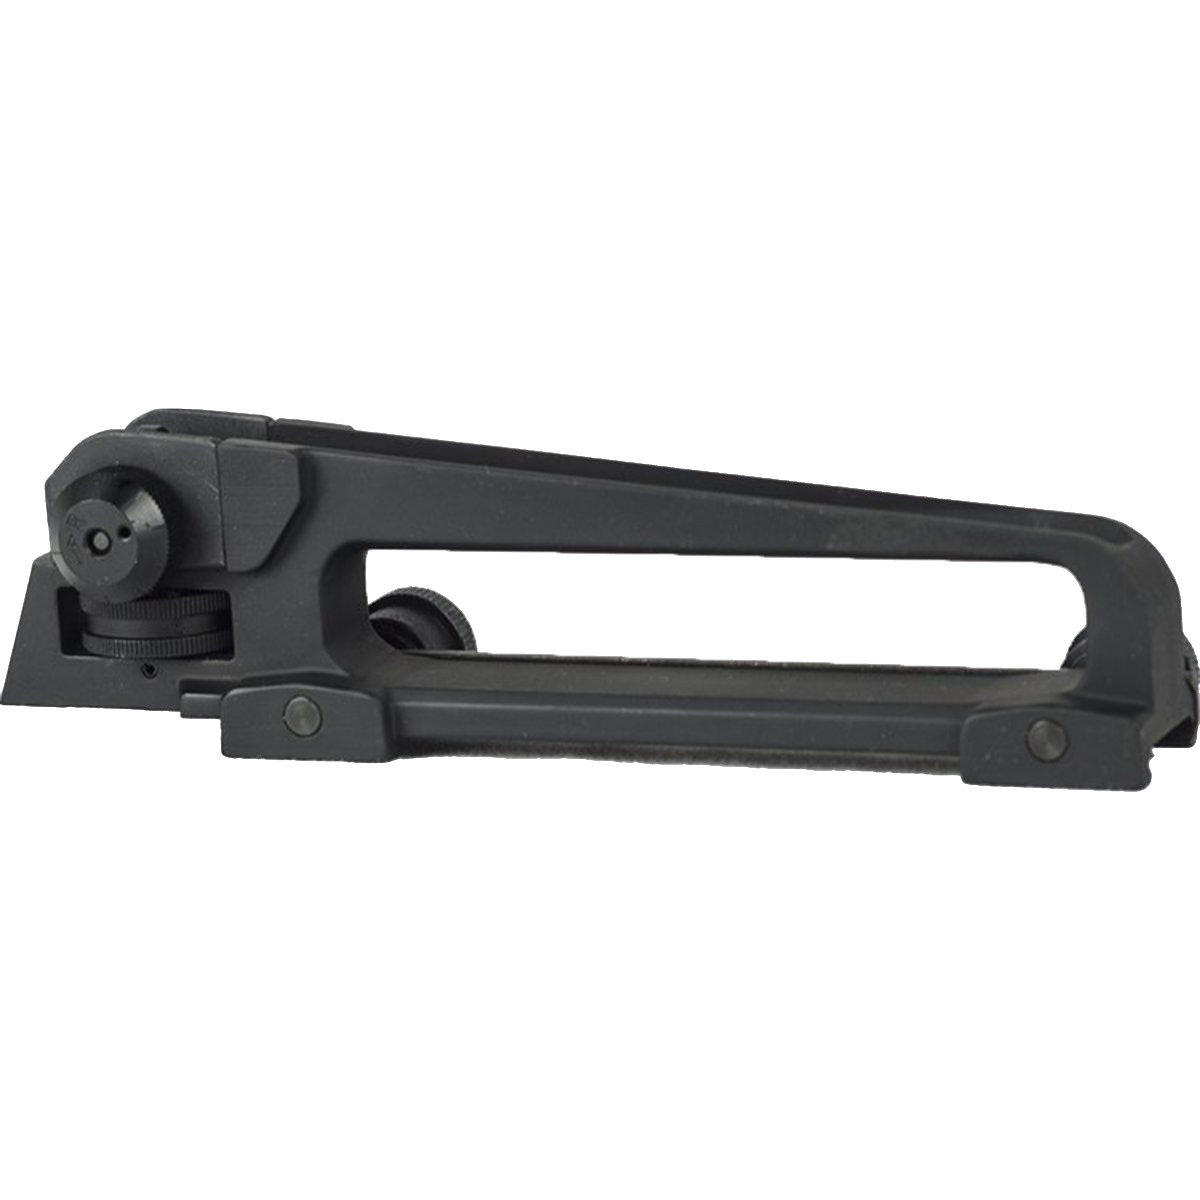 View larger image of M4 Style Carry Handle Paintball Gun Accessory